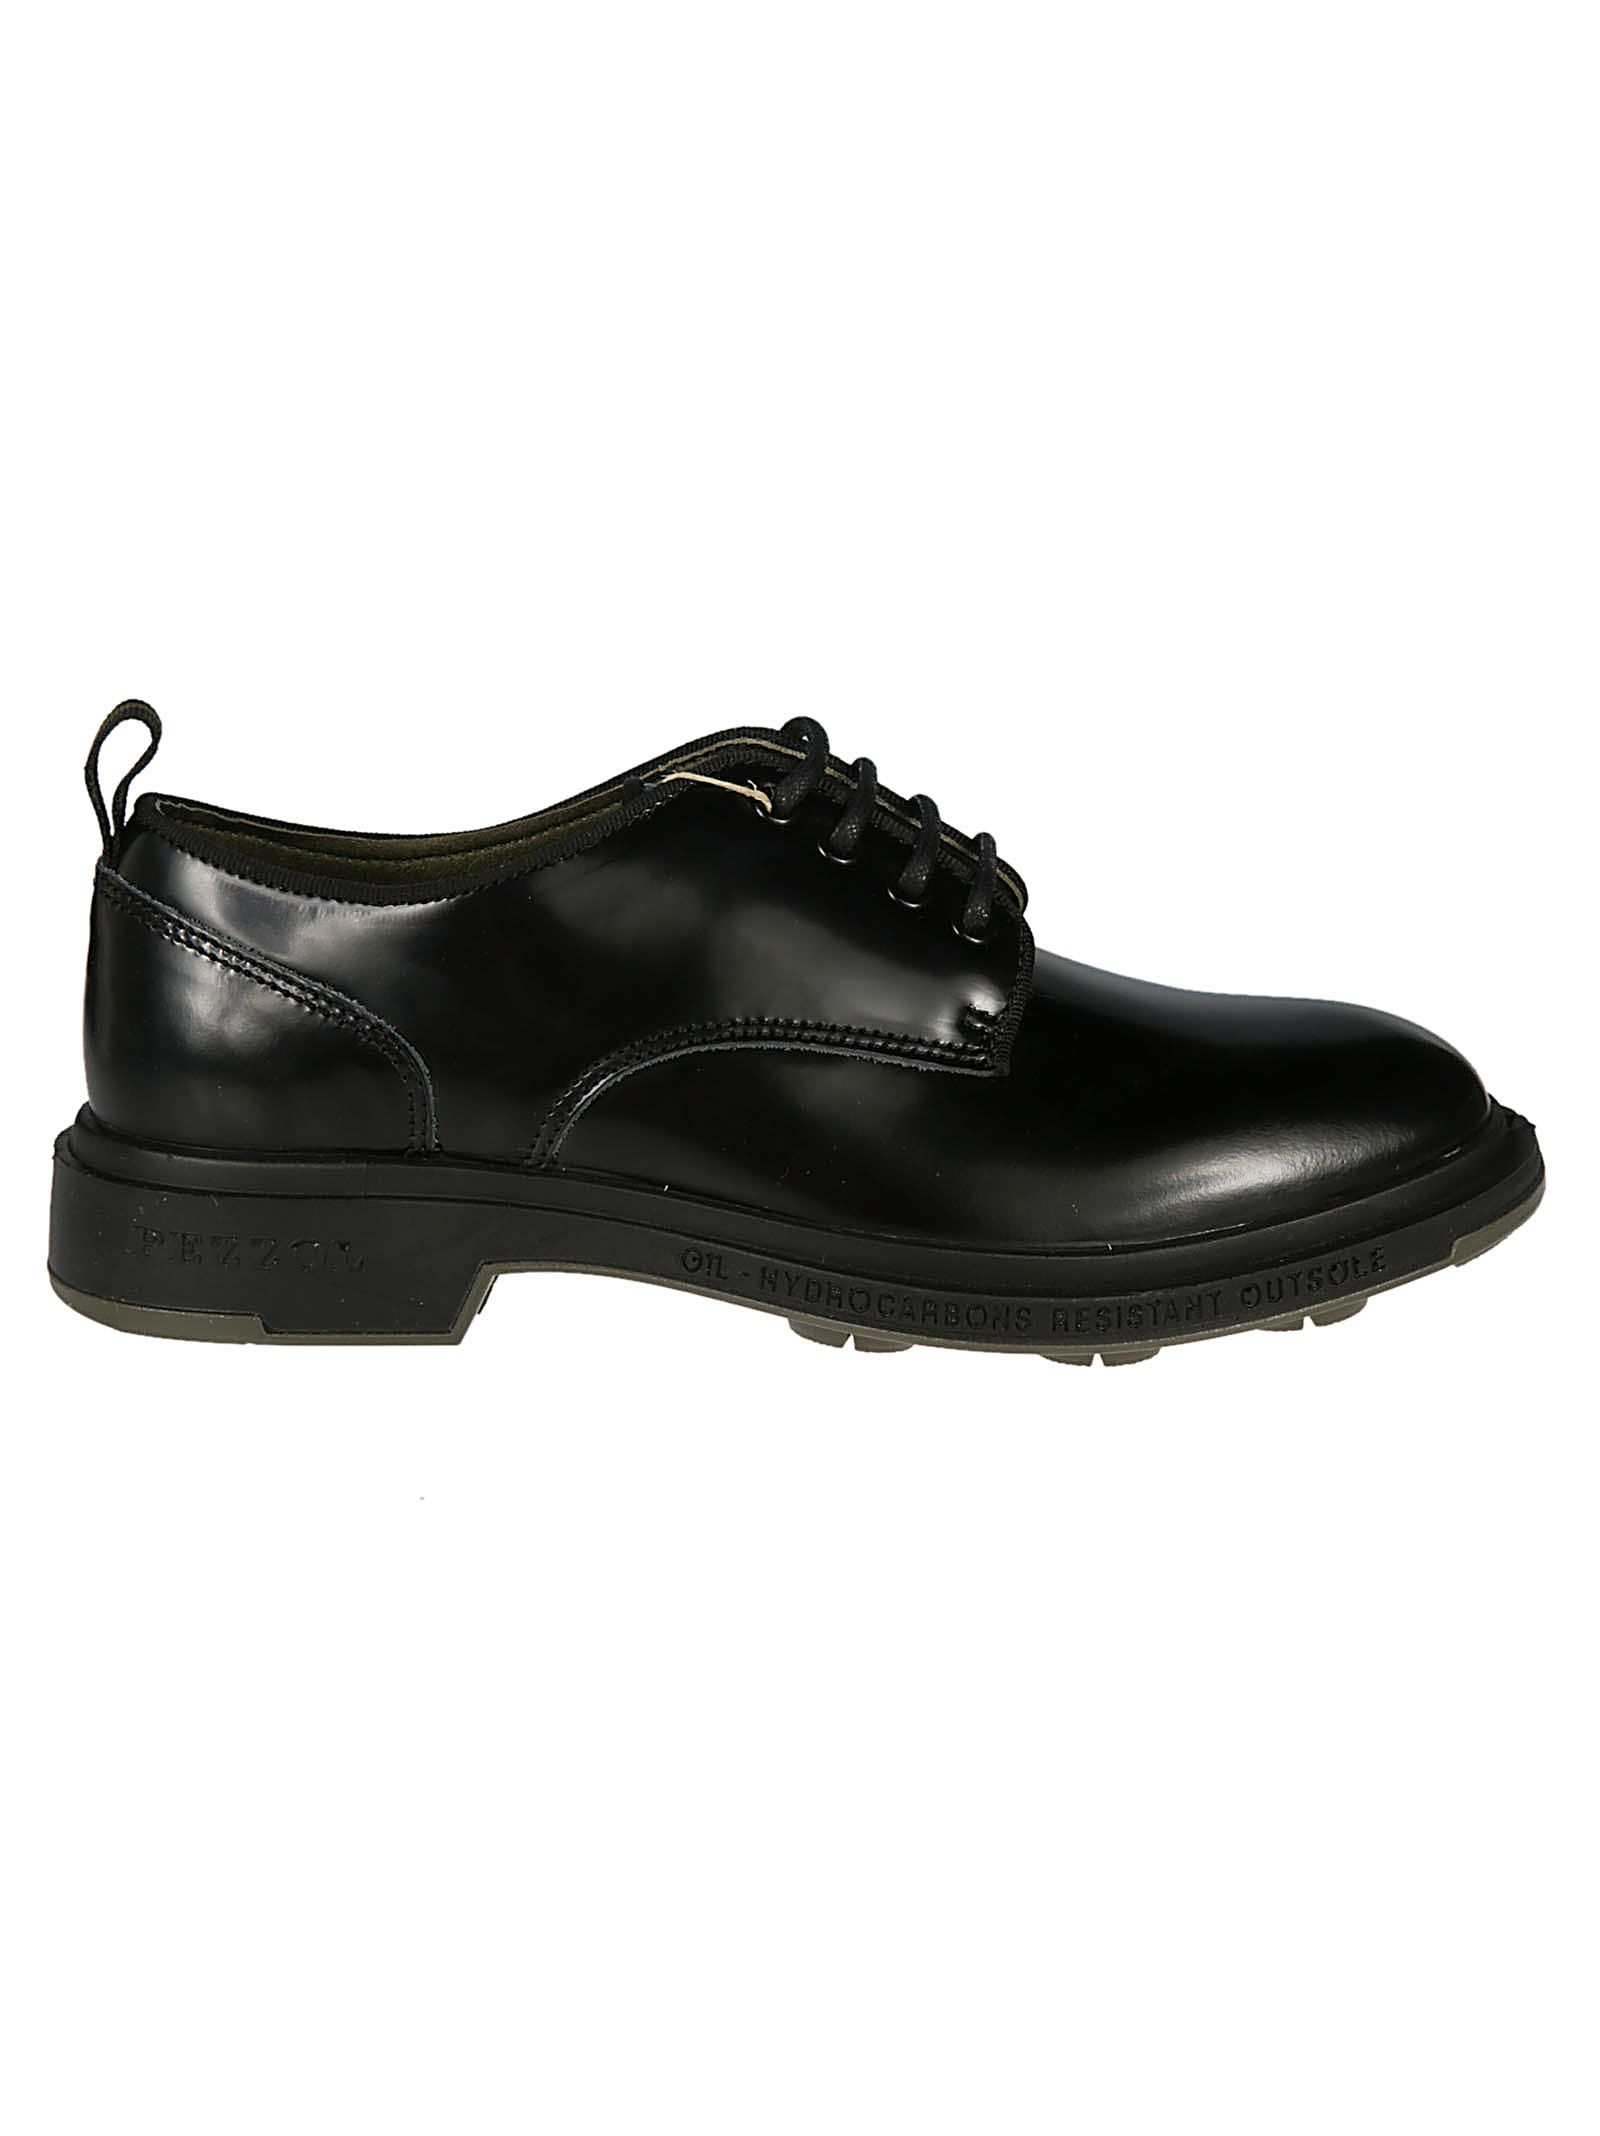 PEZZOL Casual Derby Shoes in London Black